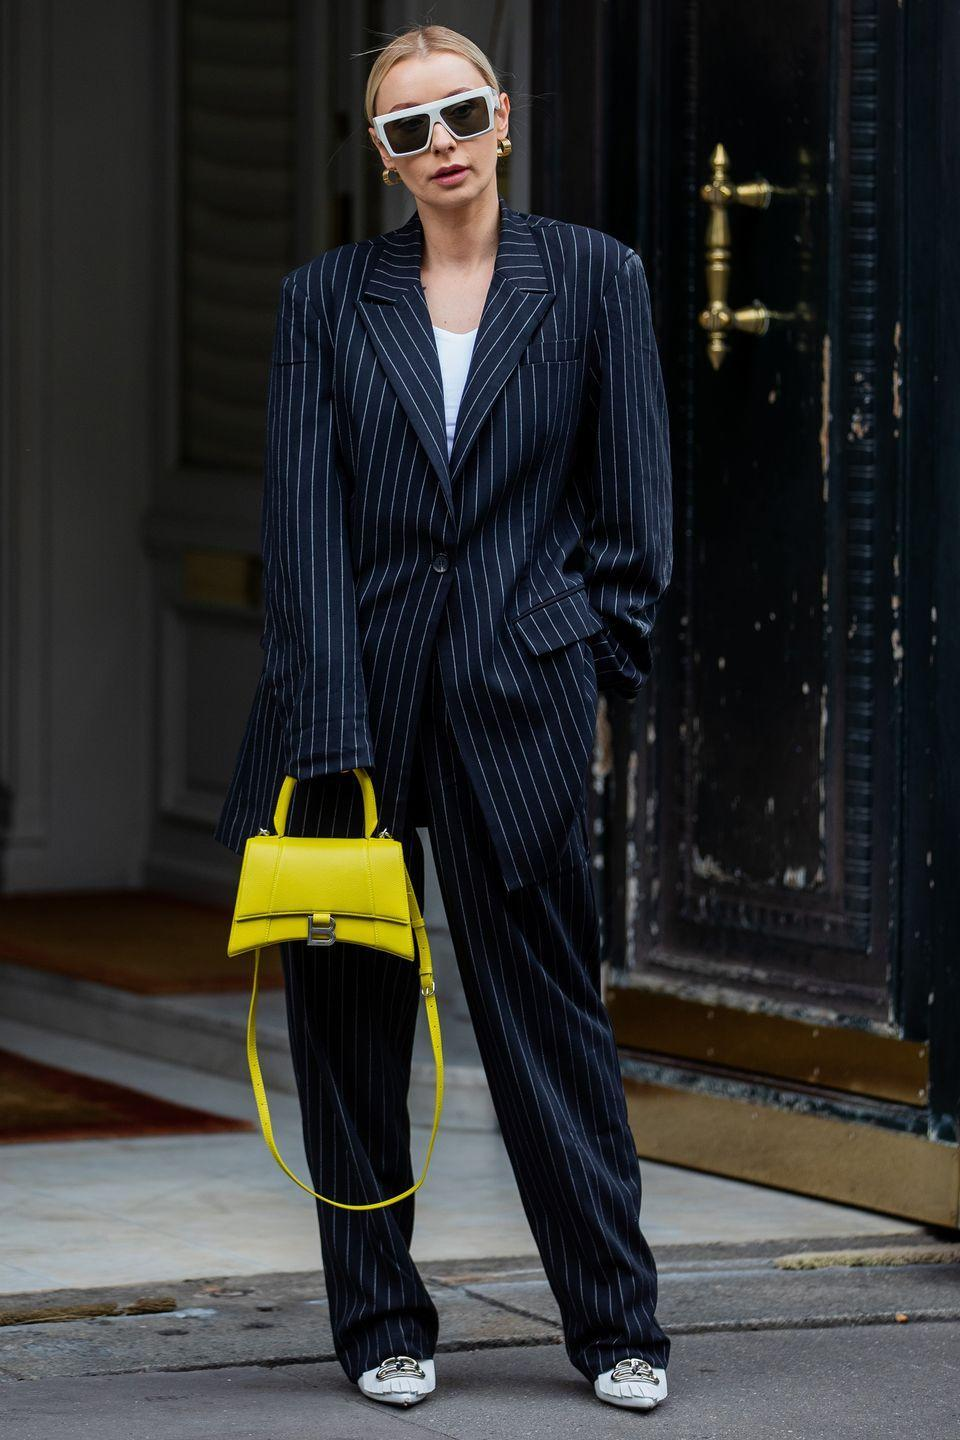 <p>There are few prints more timeless than the pinstripe. Embrace it in an oversized suit like this street styler.</p>